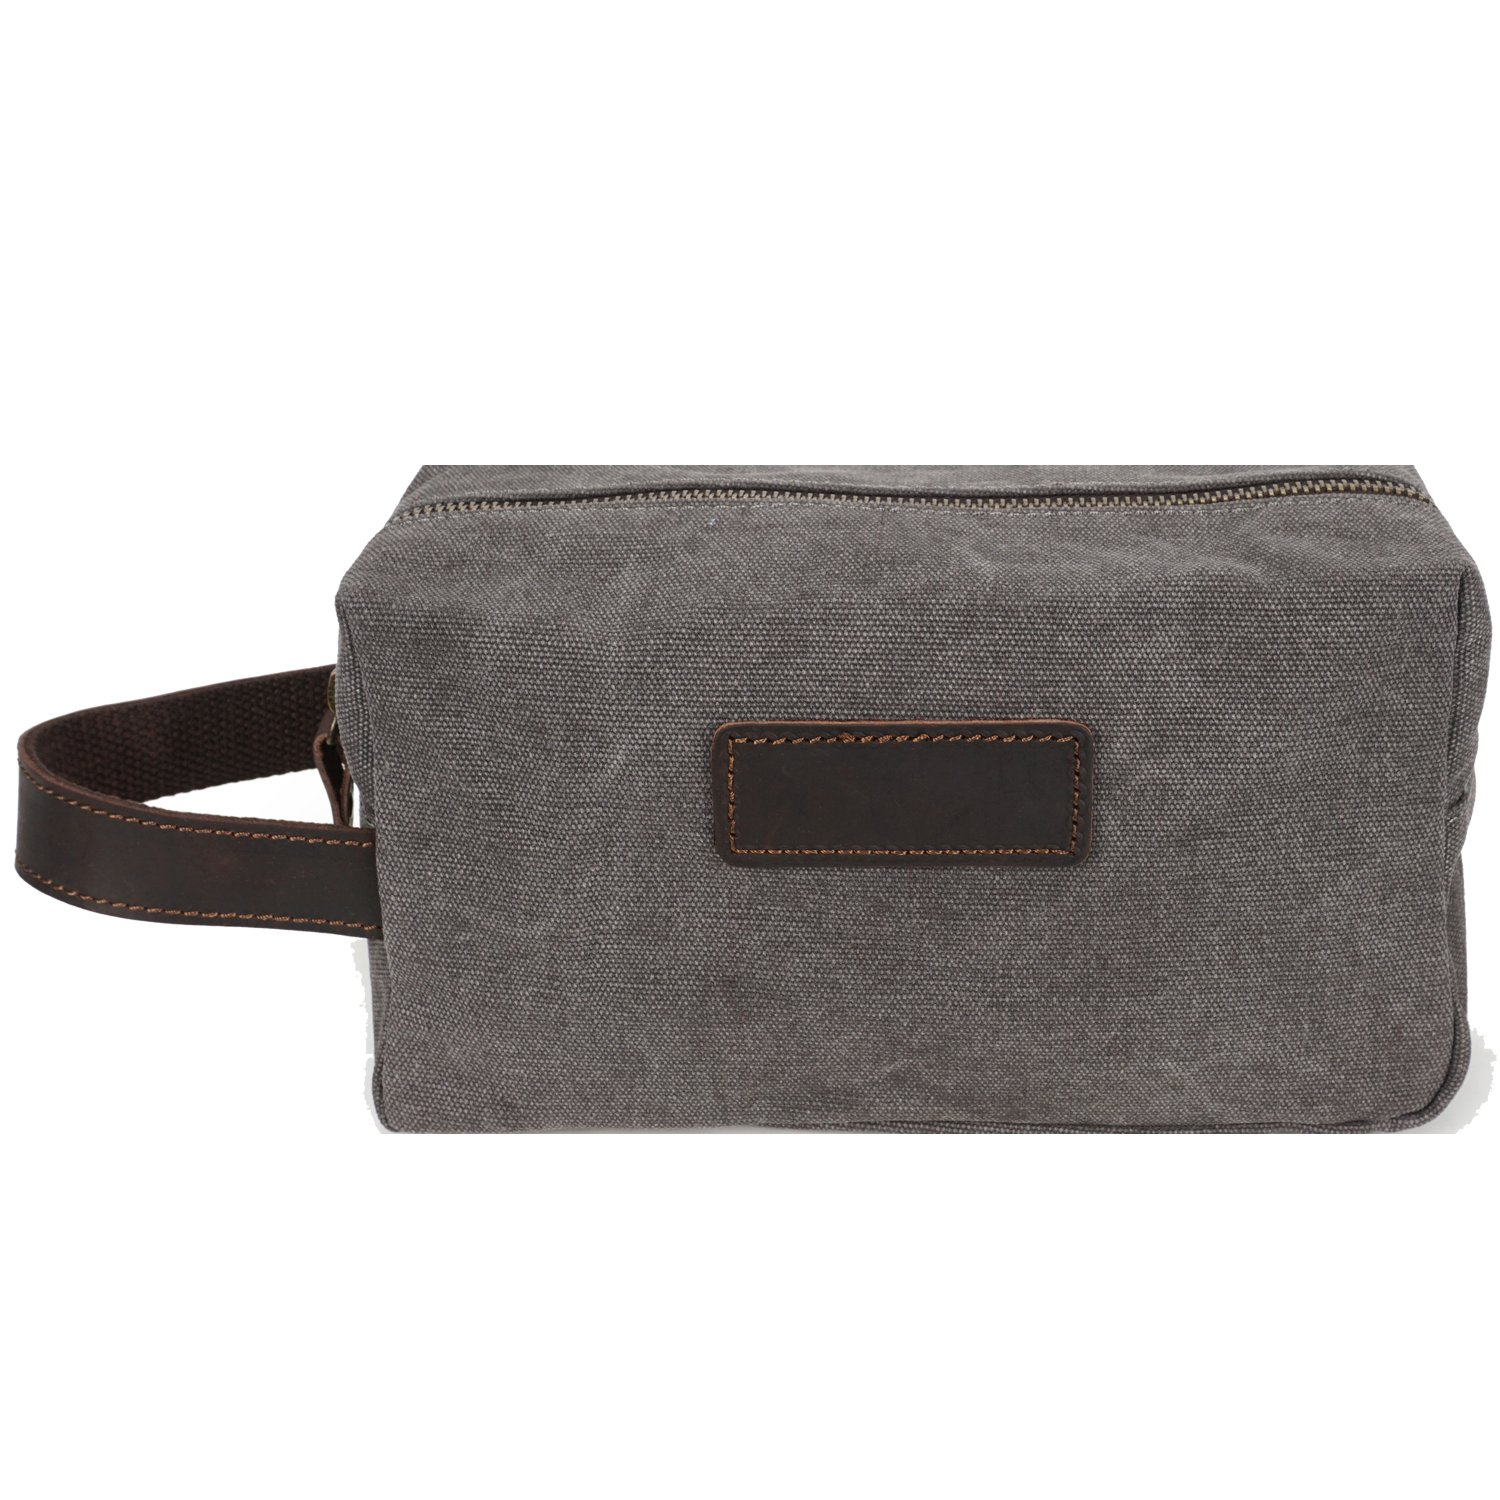 AIDERLY Vintage Travel Toiletry Bag with Carry Strap Canvas Shaving Bag Dopp Overnight Wash Kit Cosmetic Makeup Bag for Men Grey